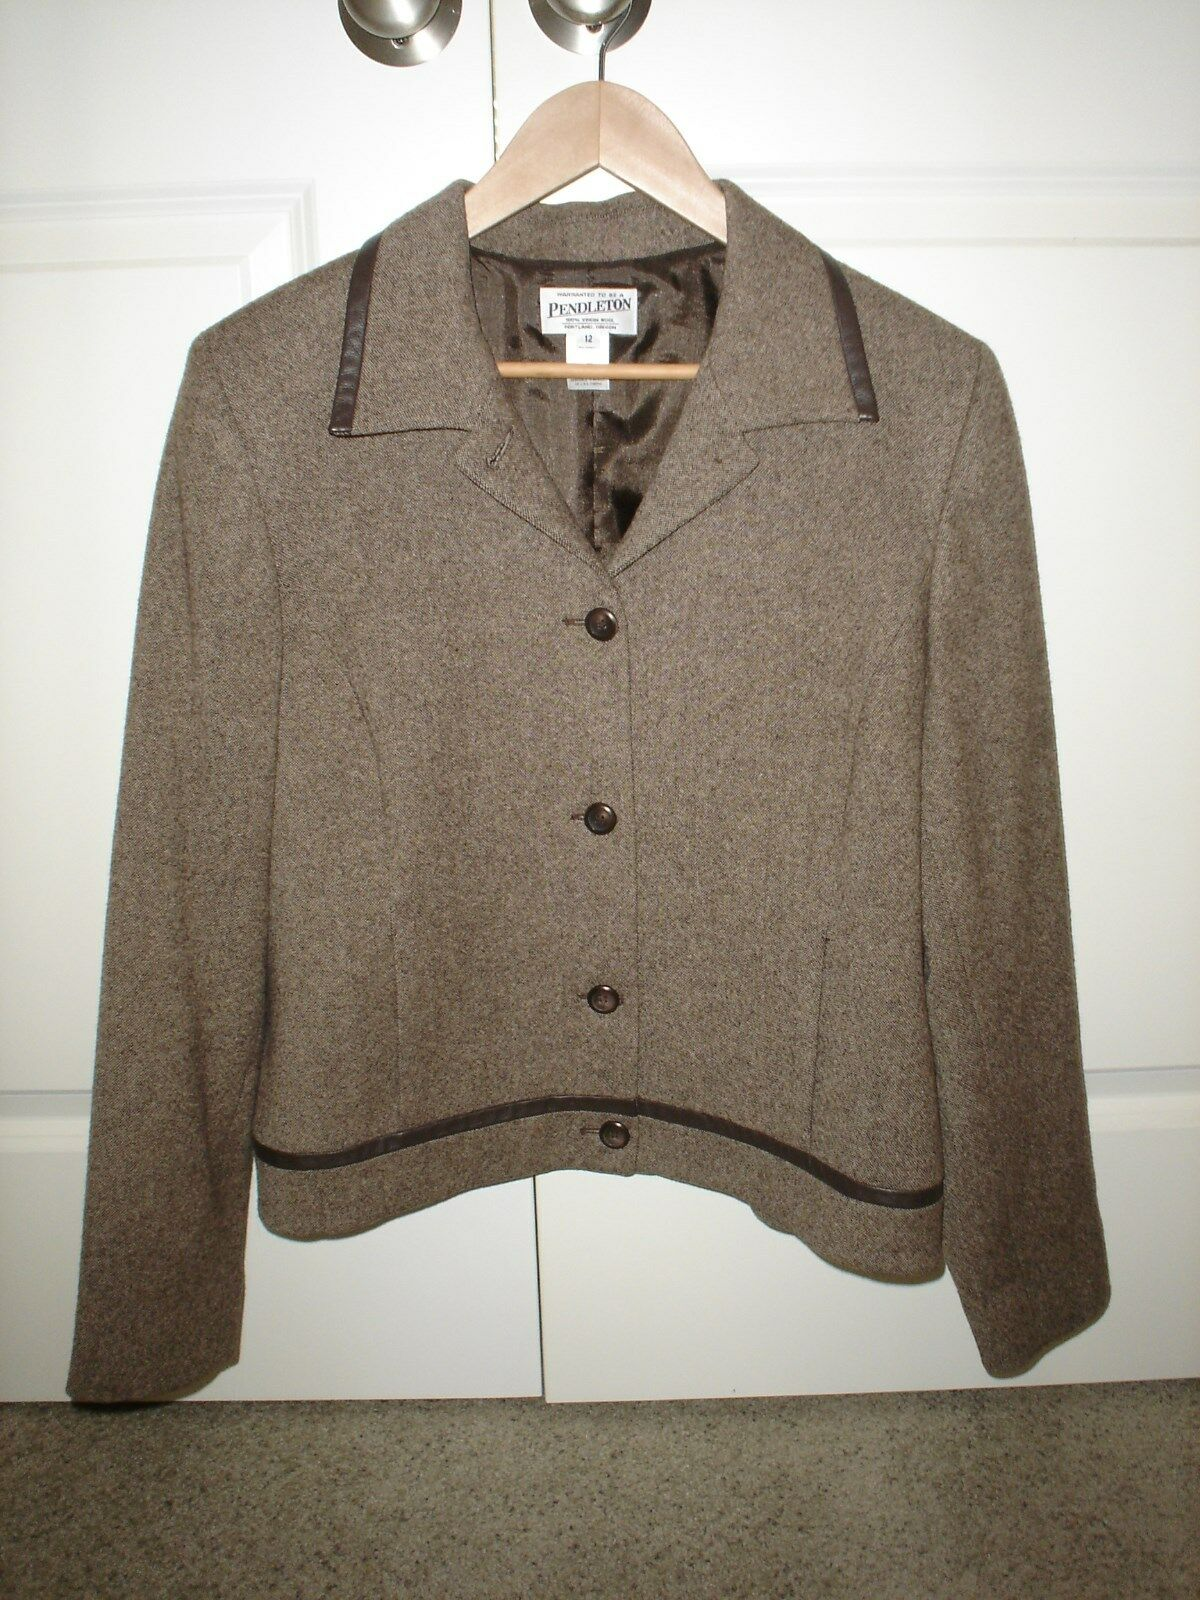 Pendleton Womens Brown 100% Virgin Wool Blazer   Leather Trim Size 12 (EUC)